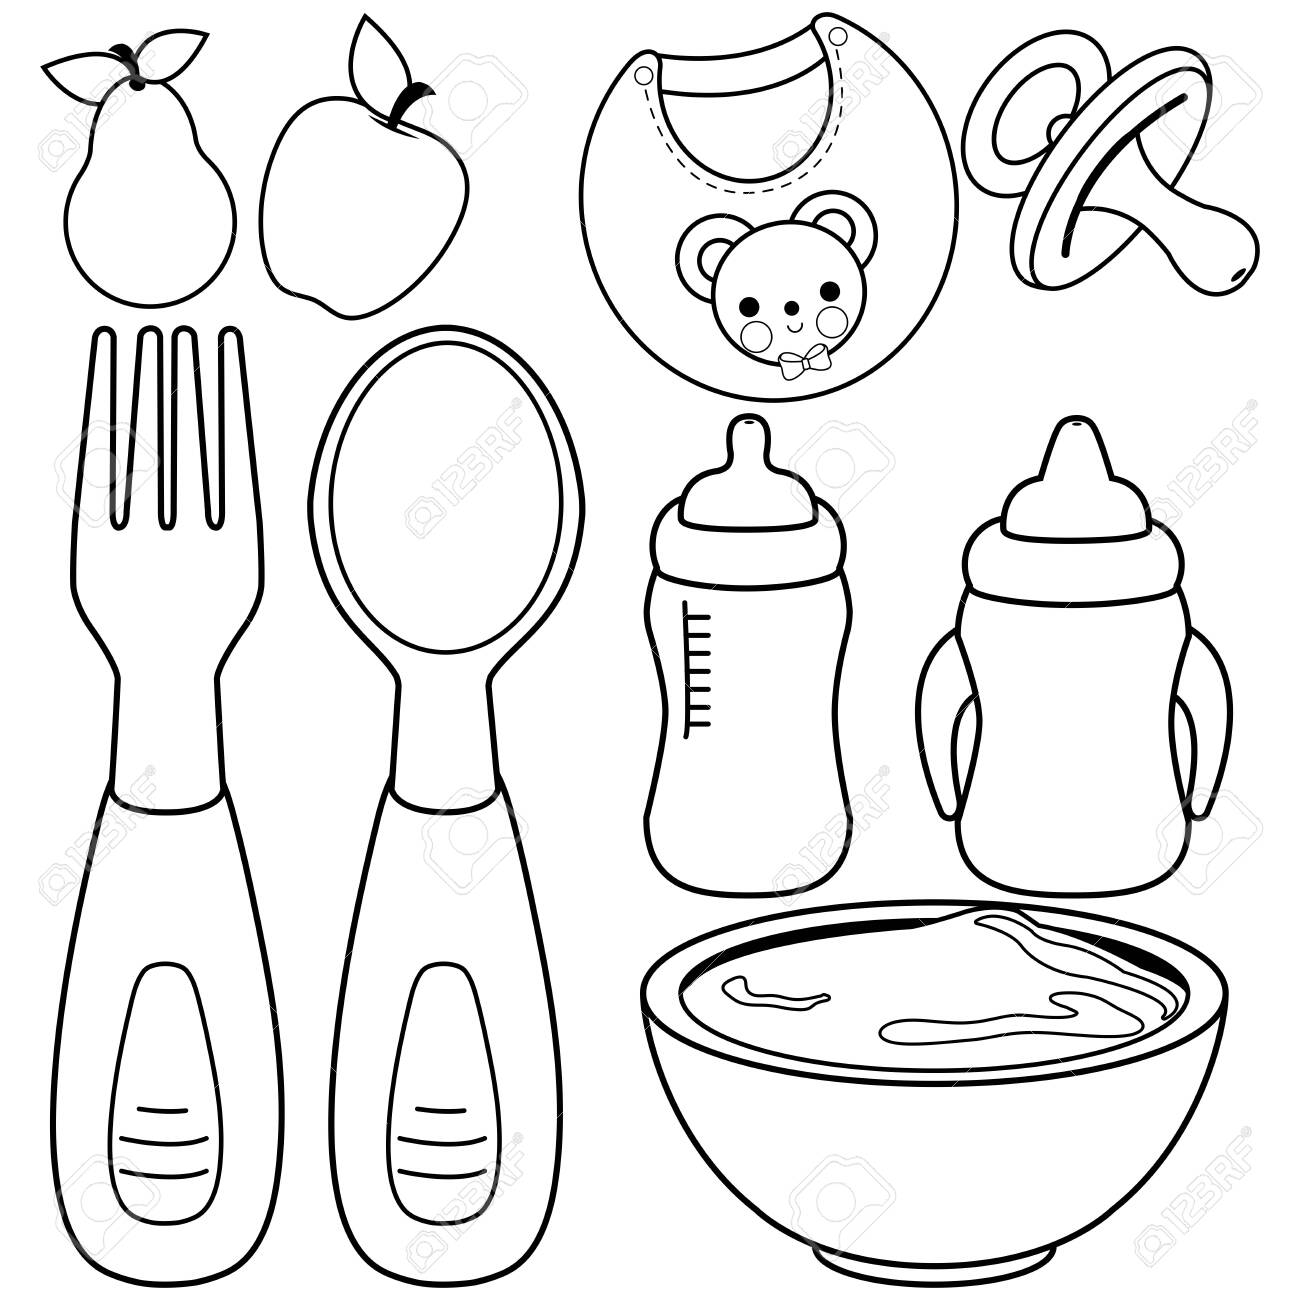 Baby Food Tableware Set Vector Black And White Coloring Page Royalty Free Cliparts Vectors And Stock Illustration Image 143587269